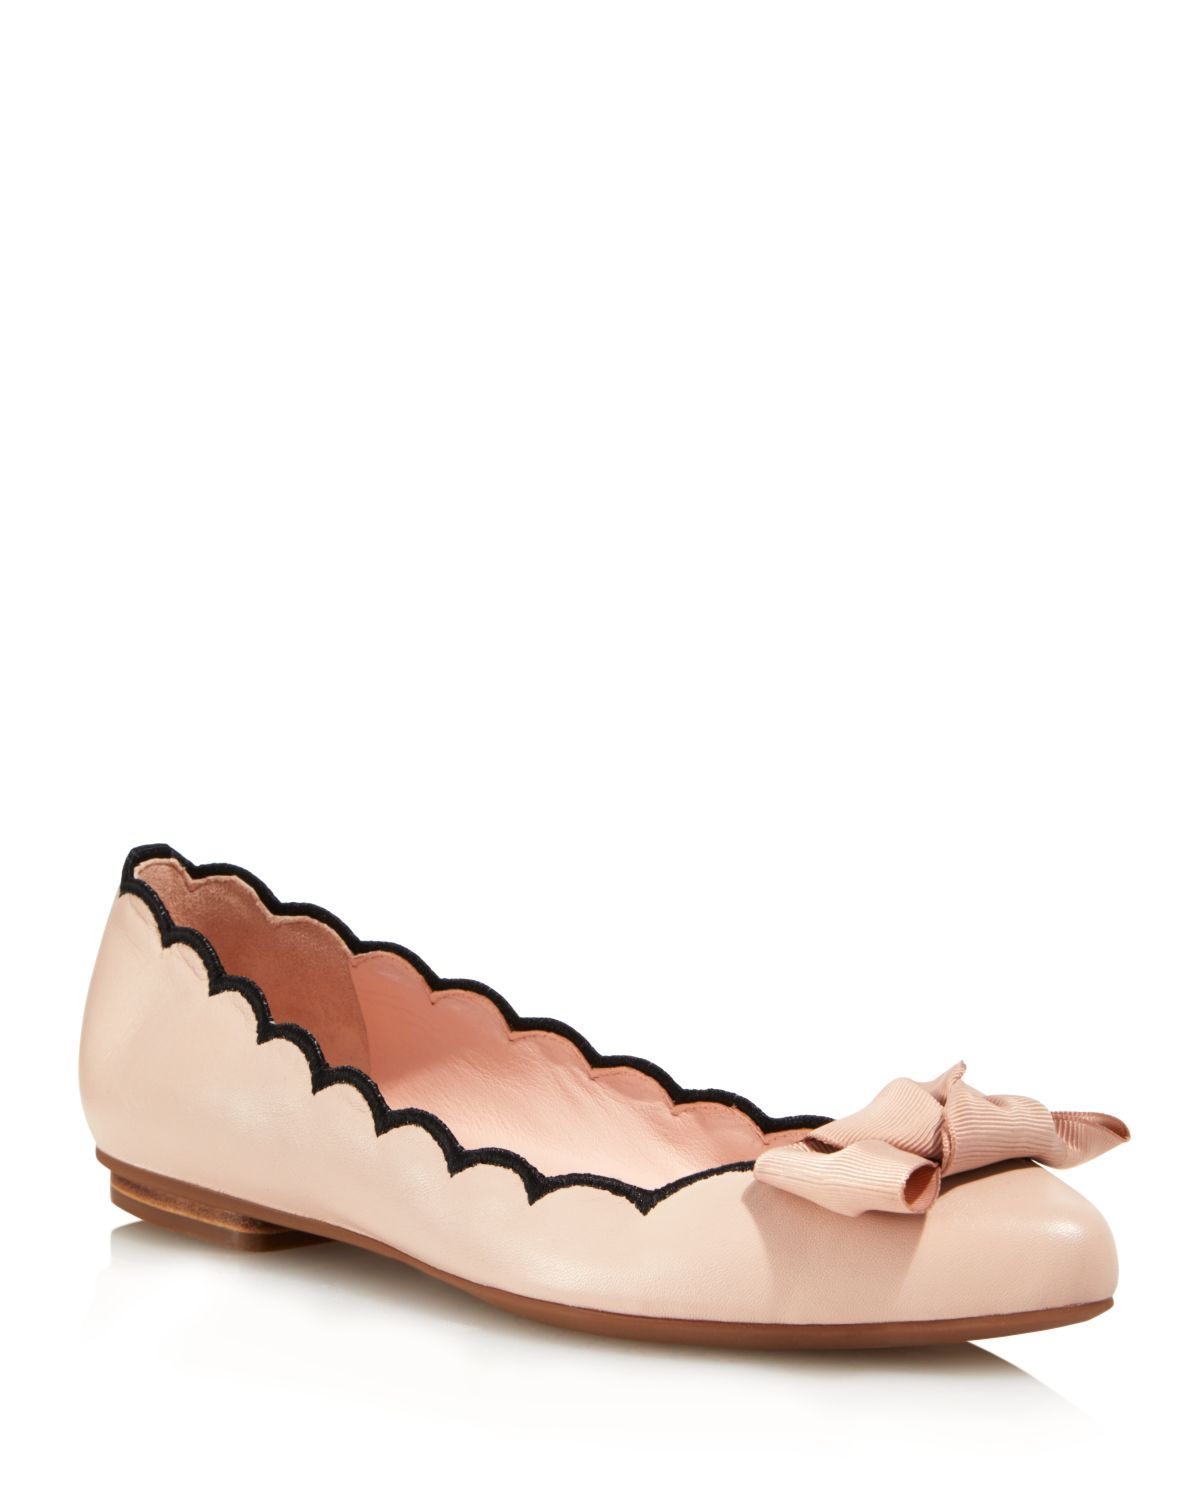 Kate Spade New York Women's Nannete Scalloped Leather Pointed Toe Flats